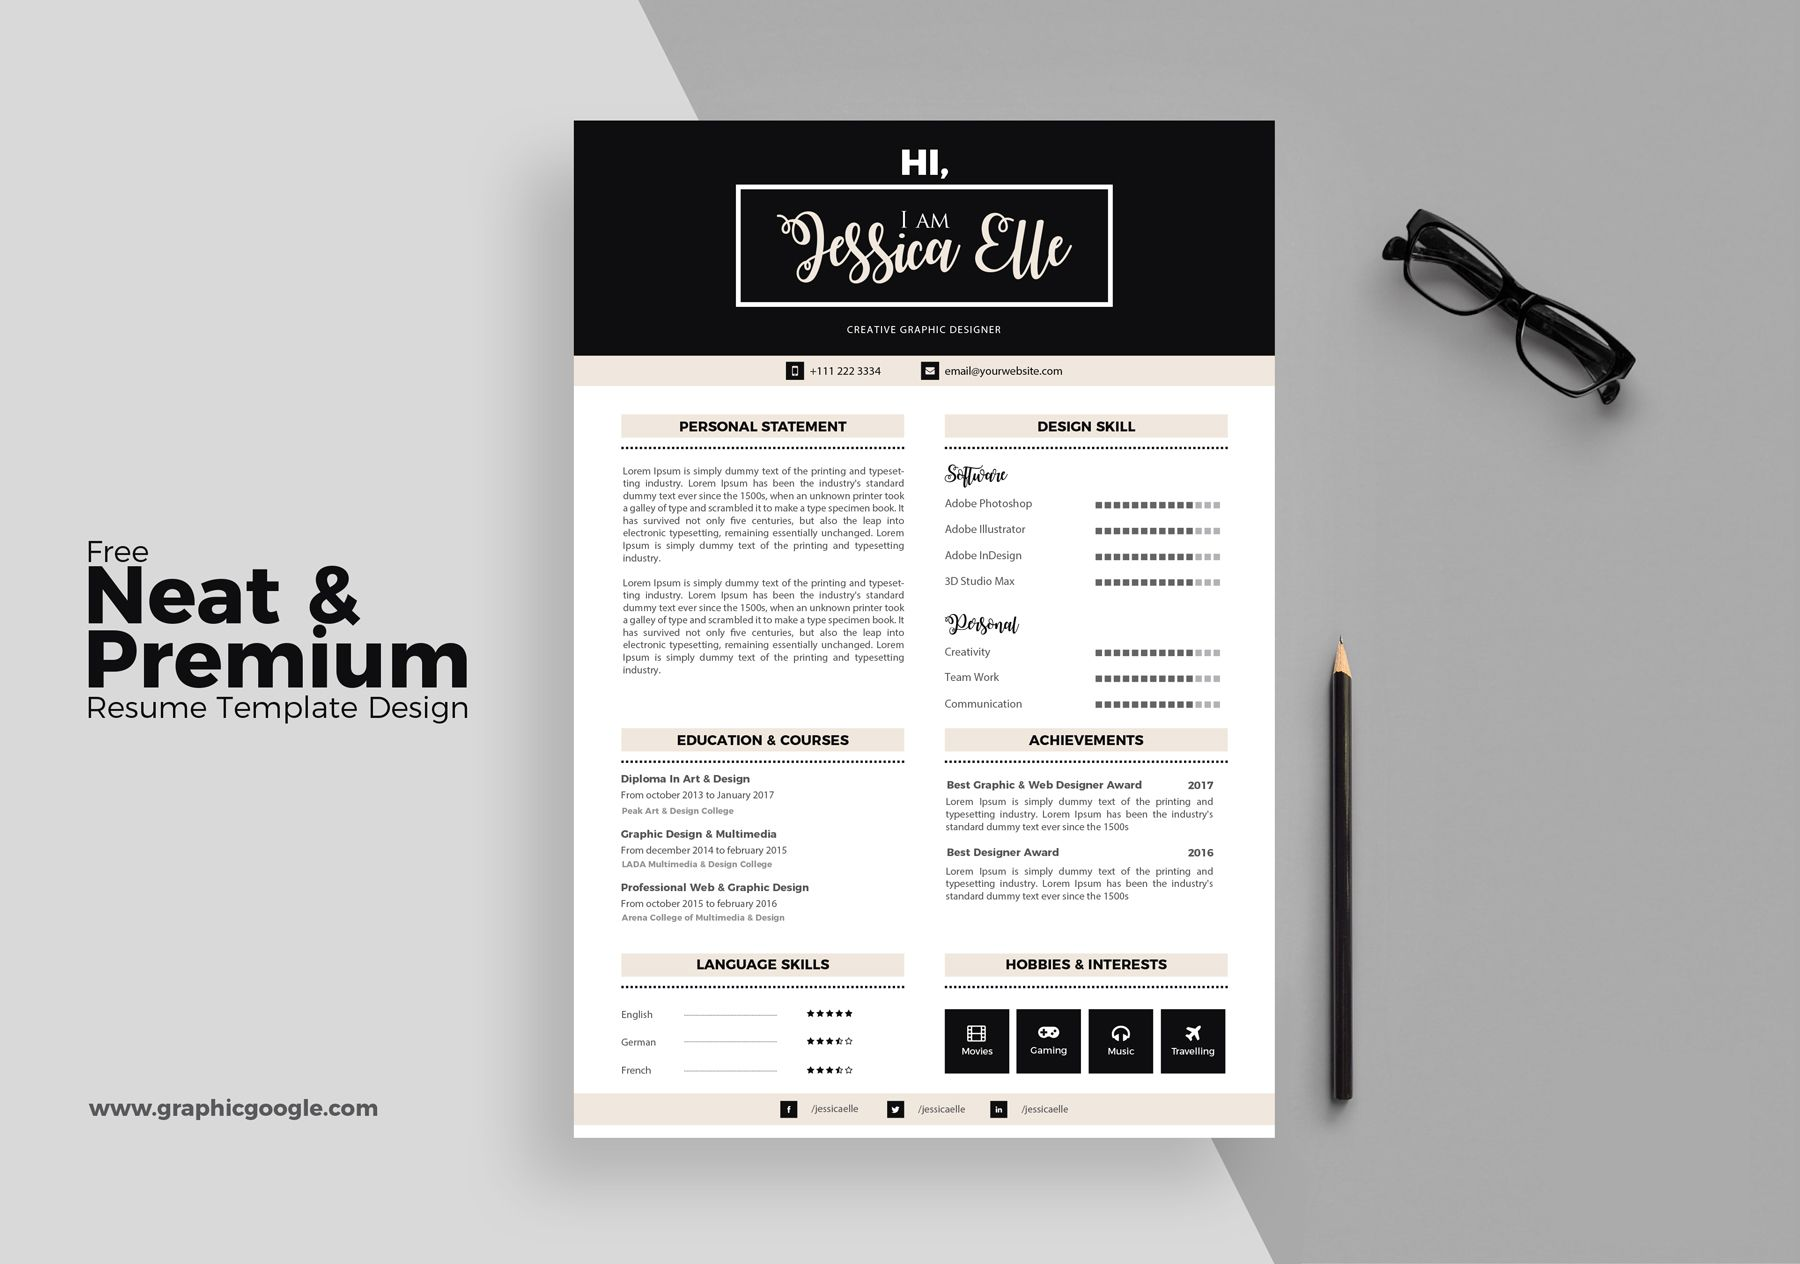 Free Neat Premium Resume Template Design With Images Resume